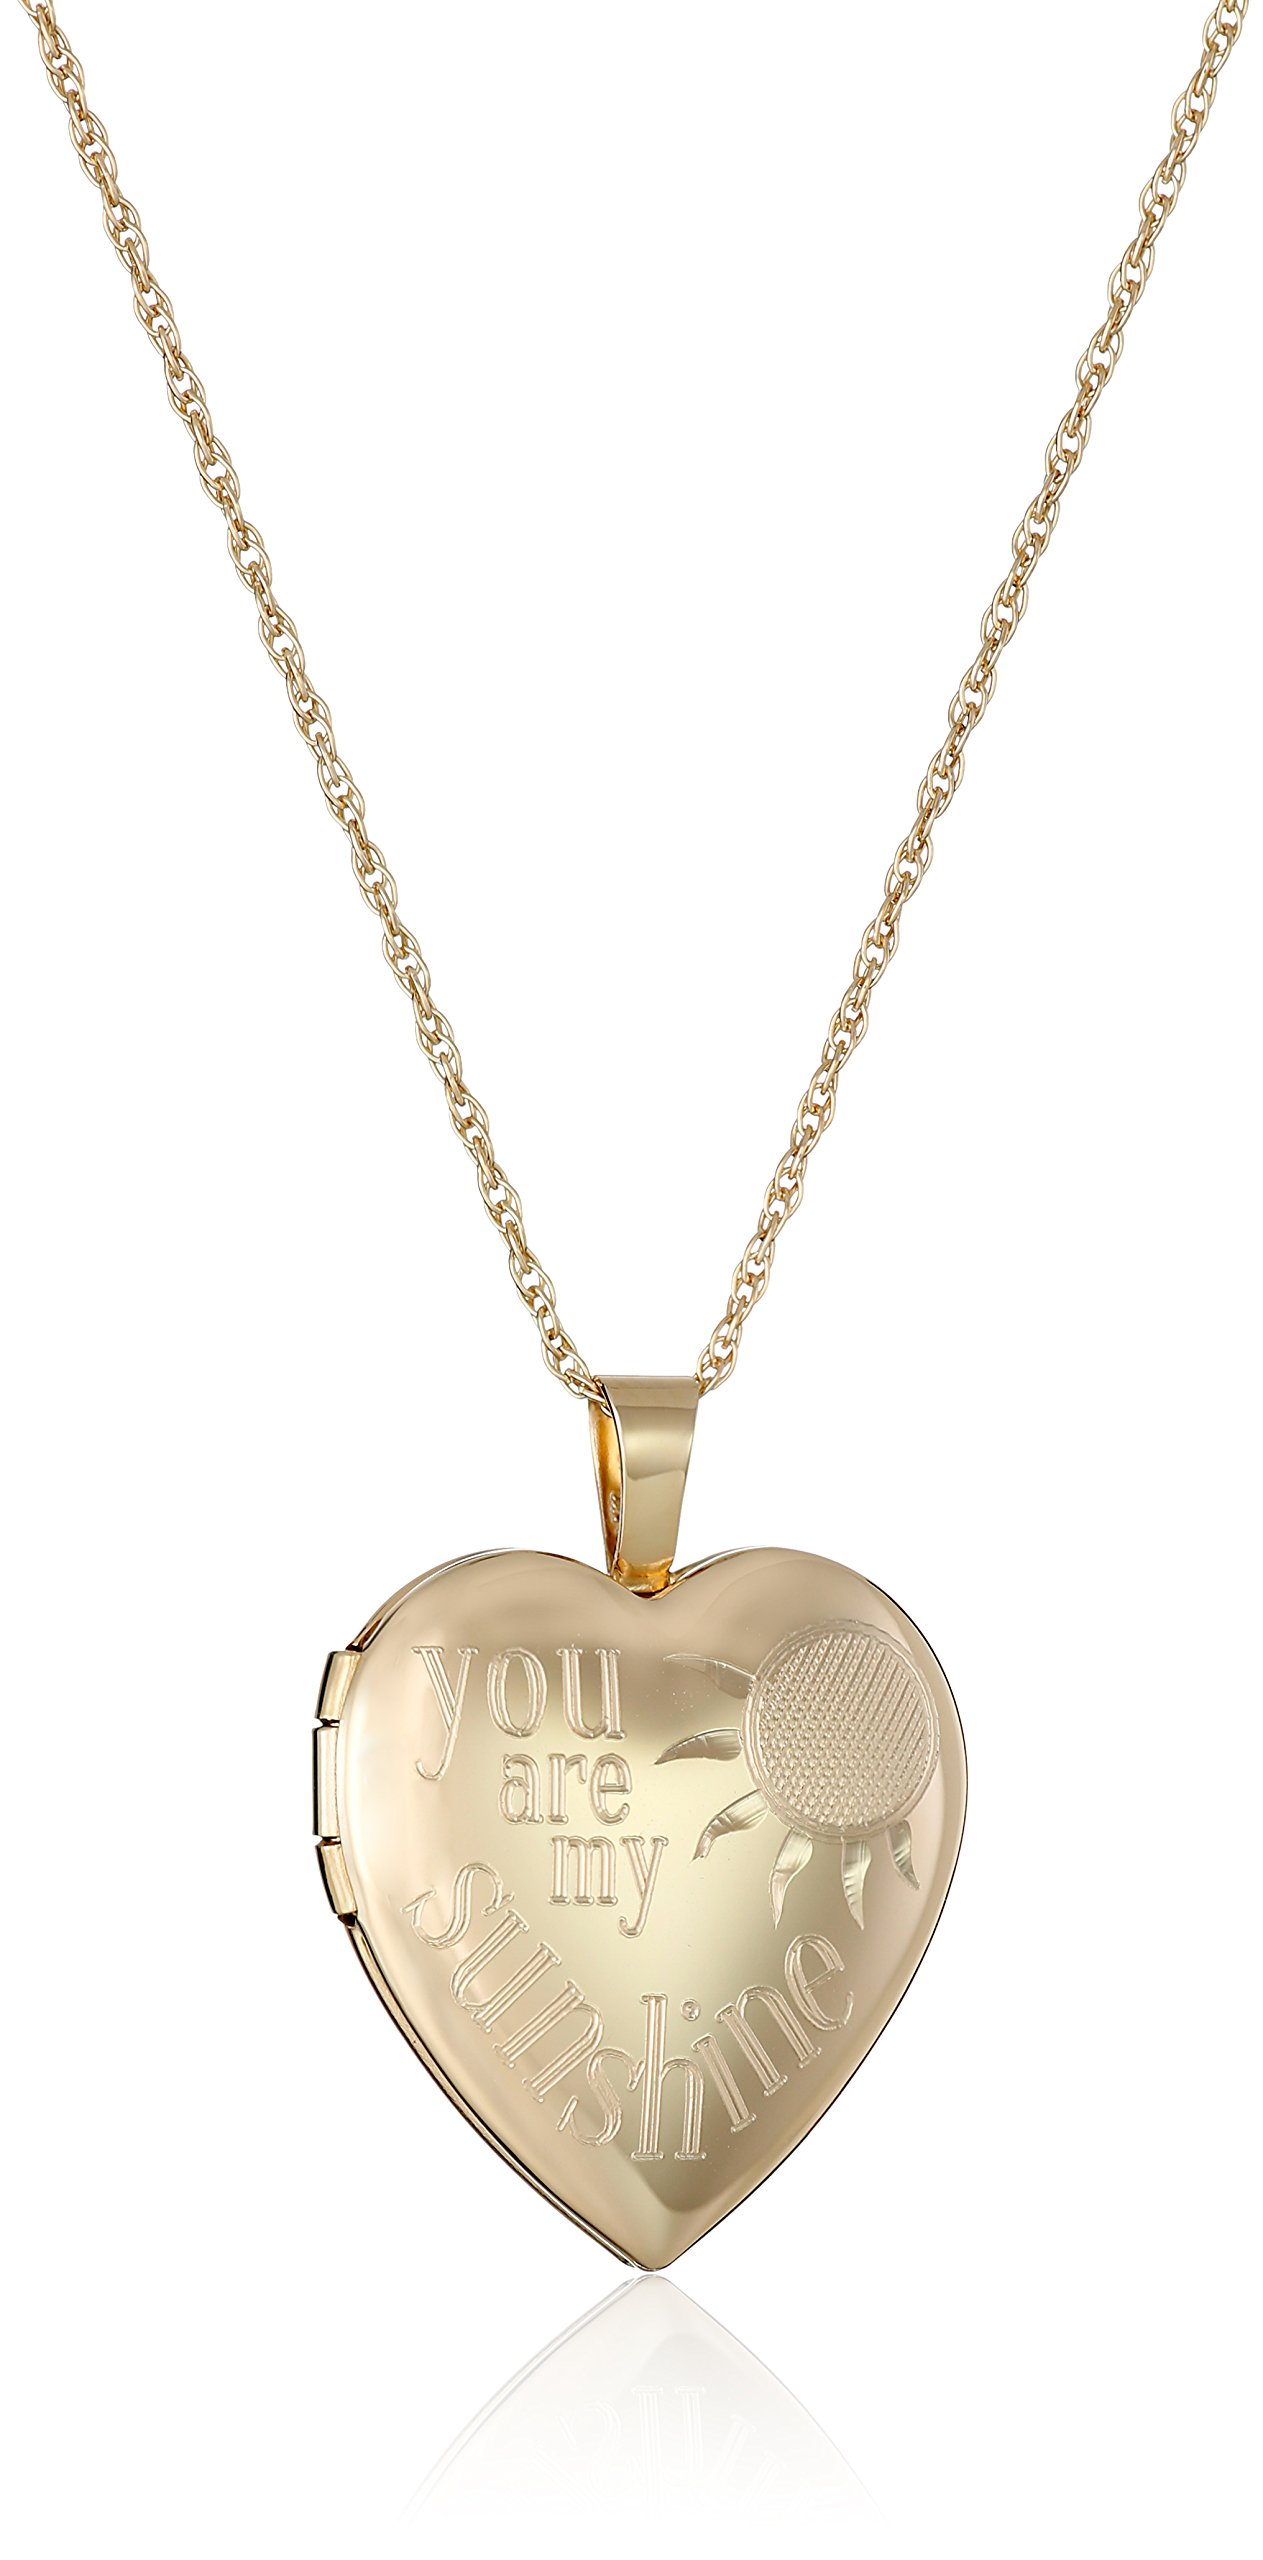 14k Gold-Filled ''You Are My Sunshine'' Heart Locket Necklace, 18''